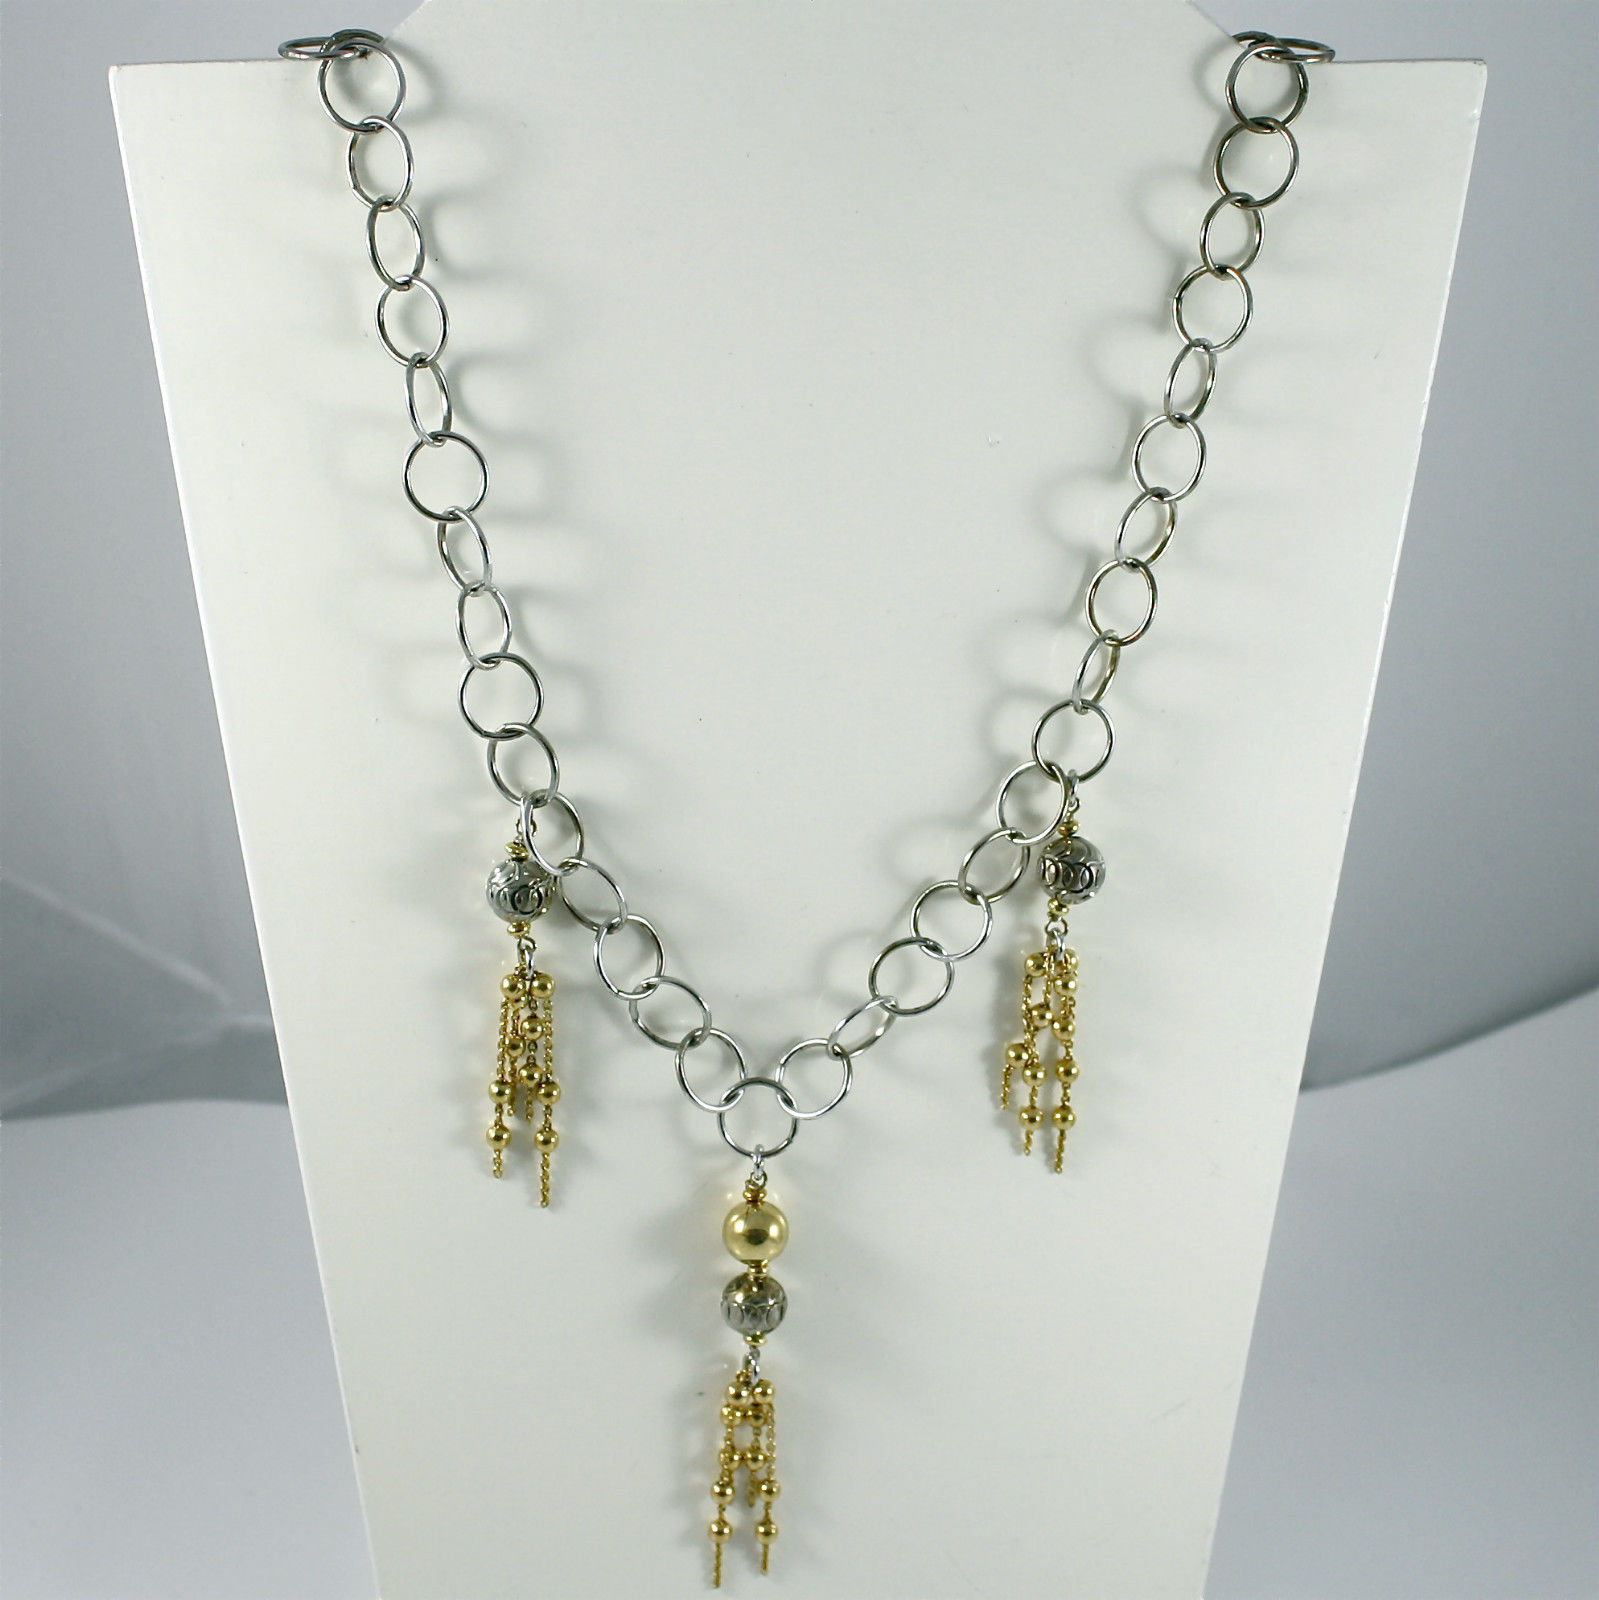 925 Silver Necklace, Rhodium, 3 Cascades of Balls Yellow Gold Plated